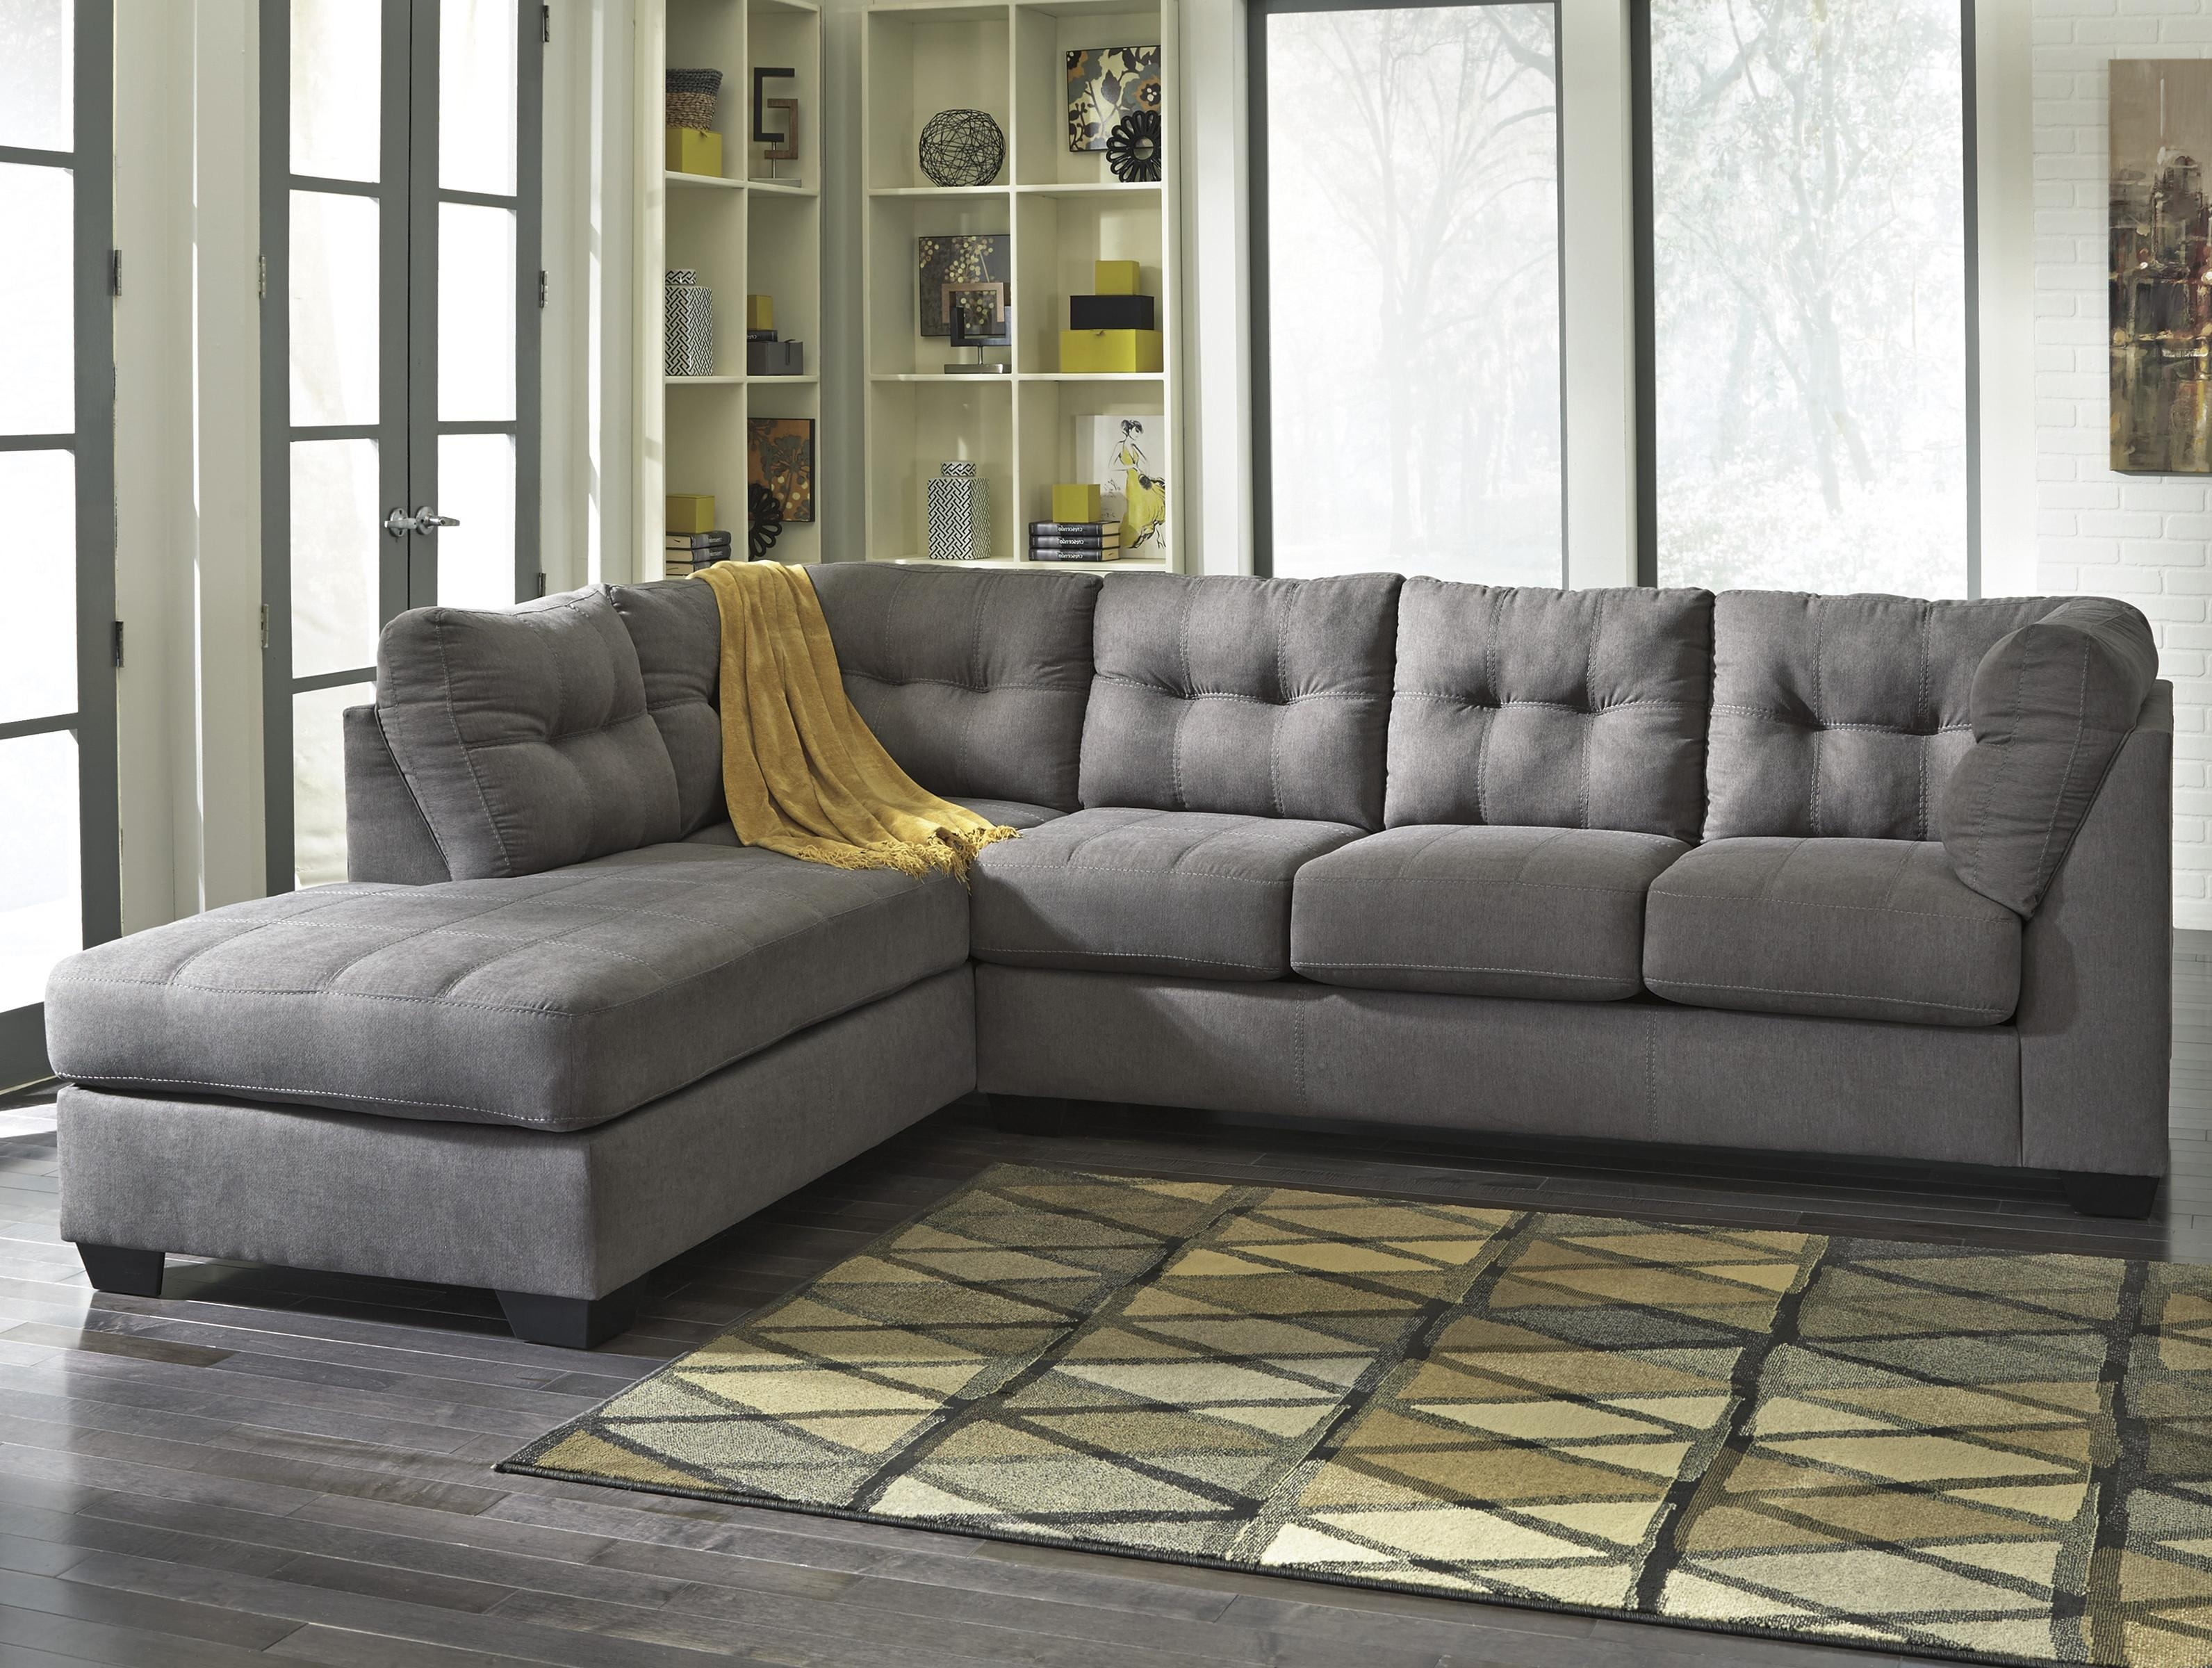 Furniture : Sofa With Two Chaise Tufted Sofa For Sale Sofa Bed In Lubbock Sectional Sofas (Image 5 of 10)